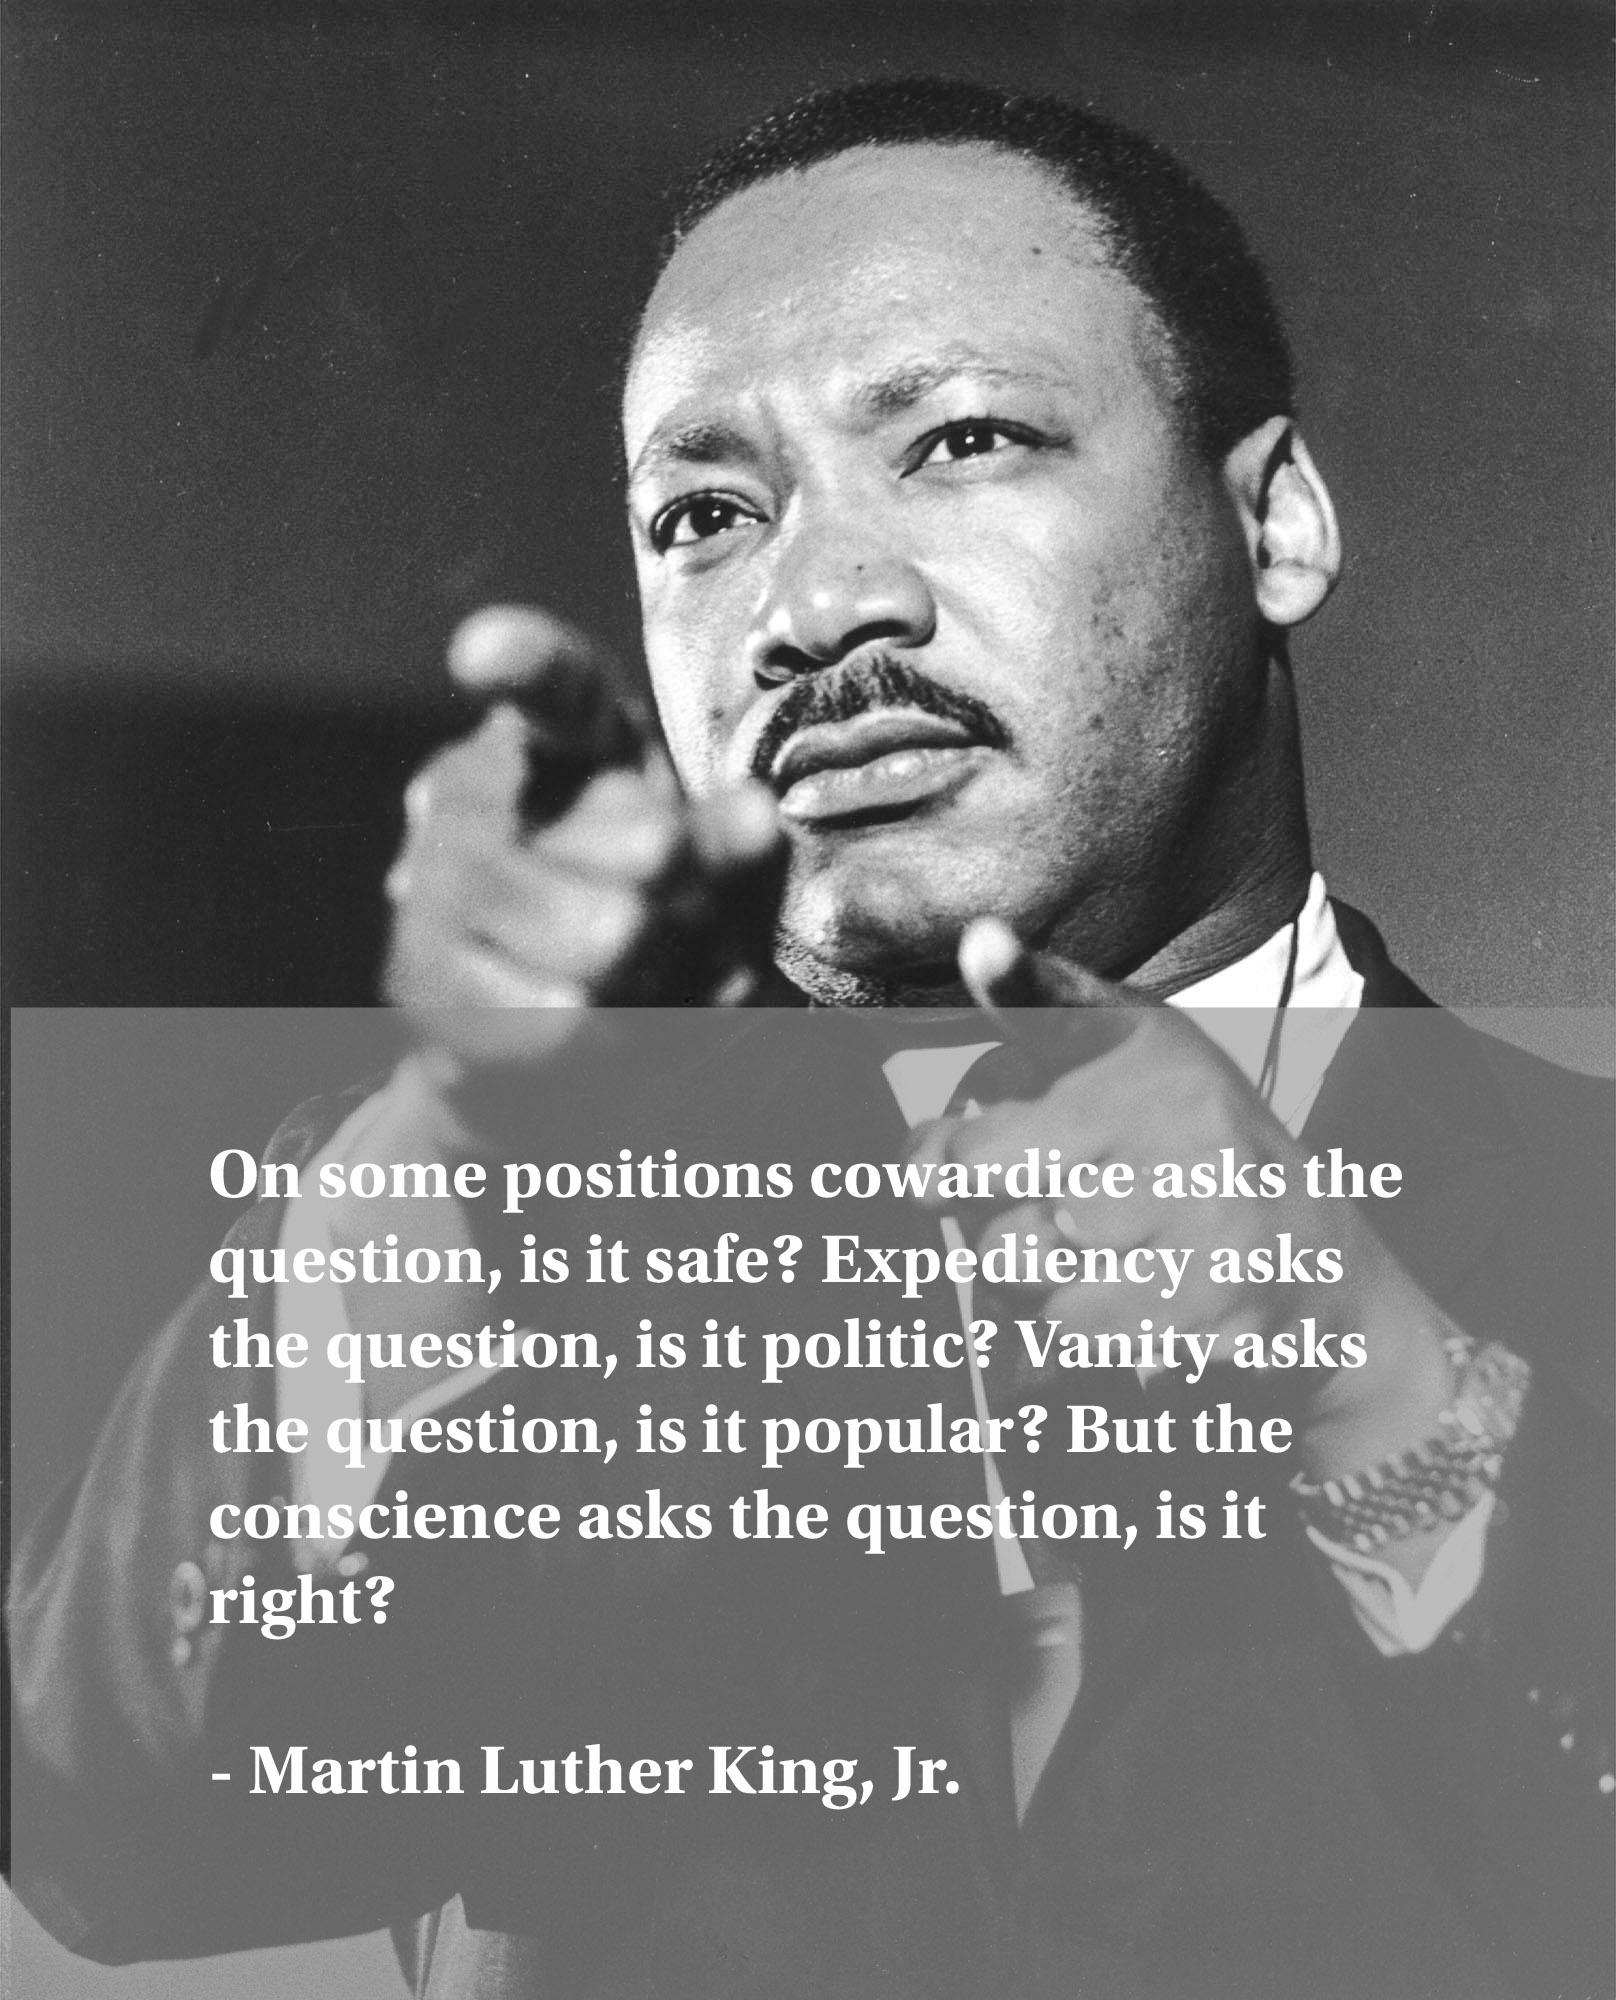 """On some positions cowardice asks the question, is it safe? Expediency asks the question, is it politic? Vanity asks the question, is it popular? But the conscience asks the question, is it right?"" – Martin Luther King, Jr. [1616×2000]"